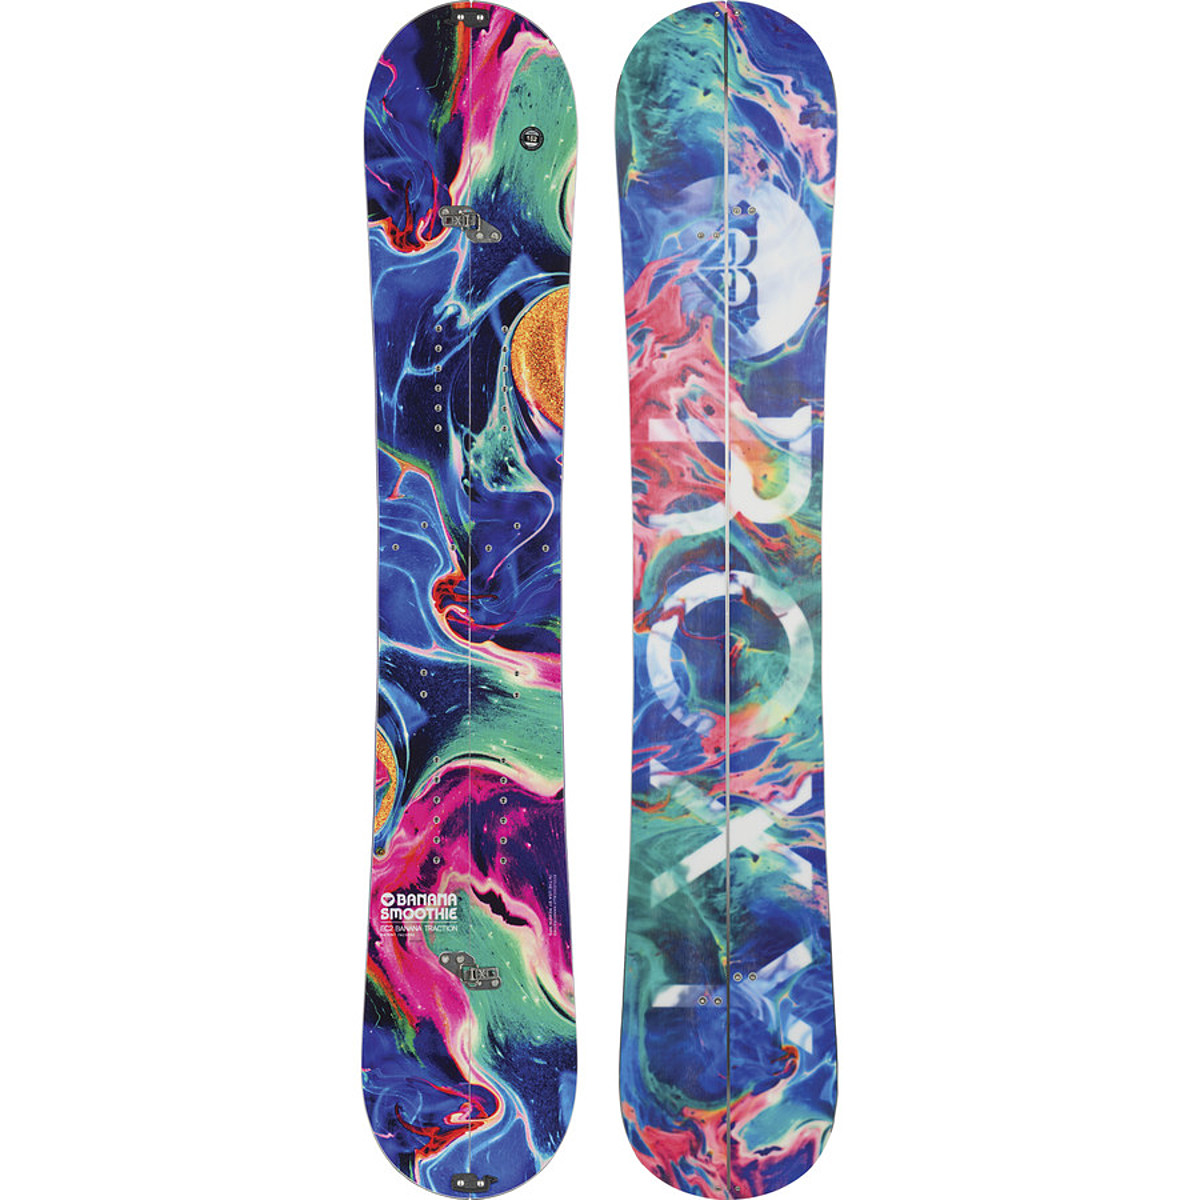 Roxy Banana Smoothie EC2 Split Snowboard